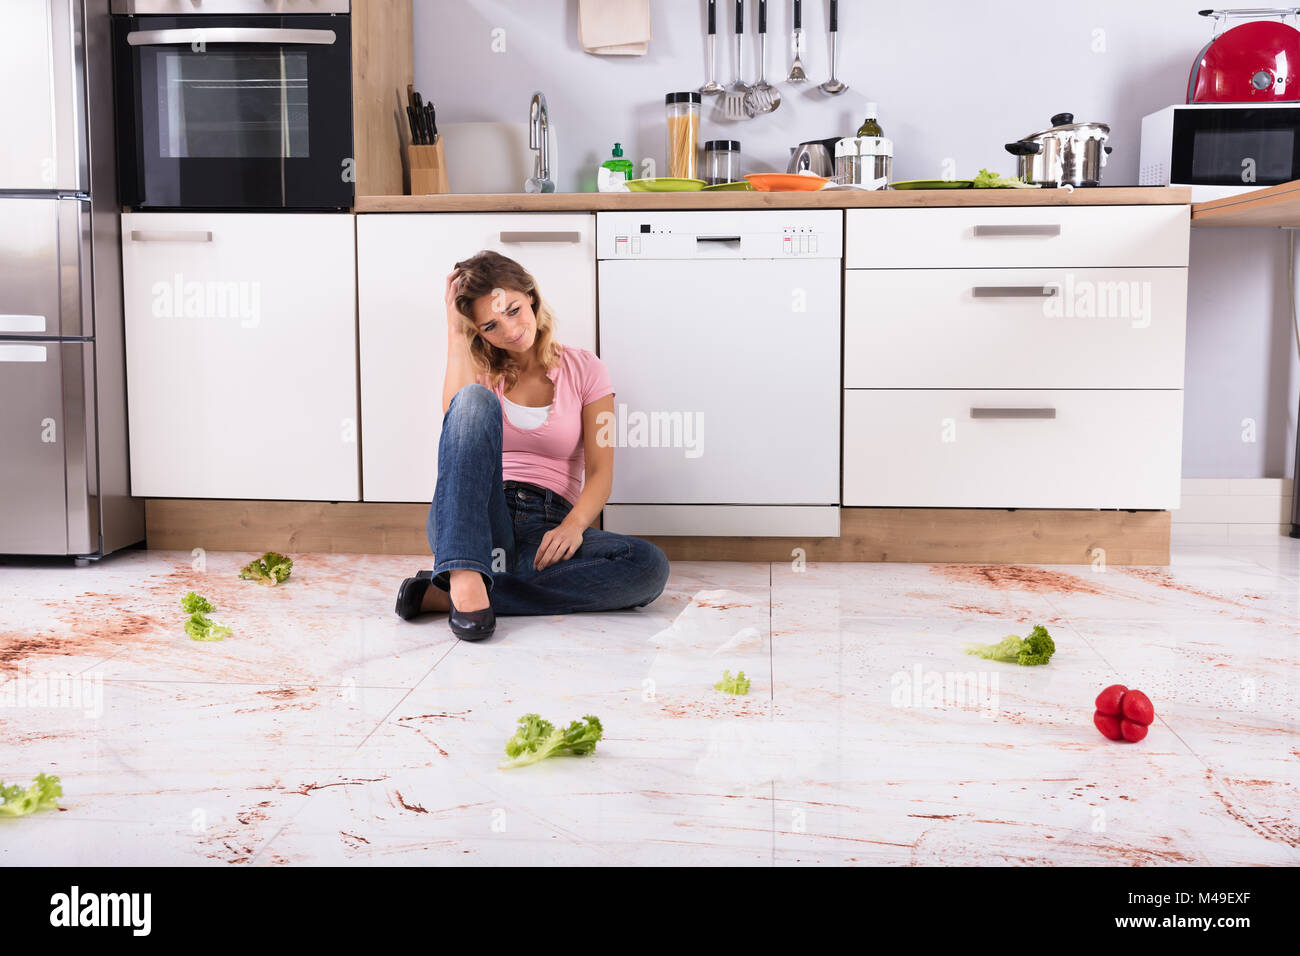 Unhappy Young Woman Sitting On Dirty Kitchen Floor At Home Stock ...